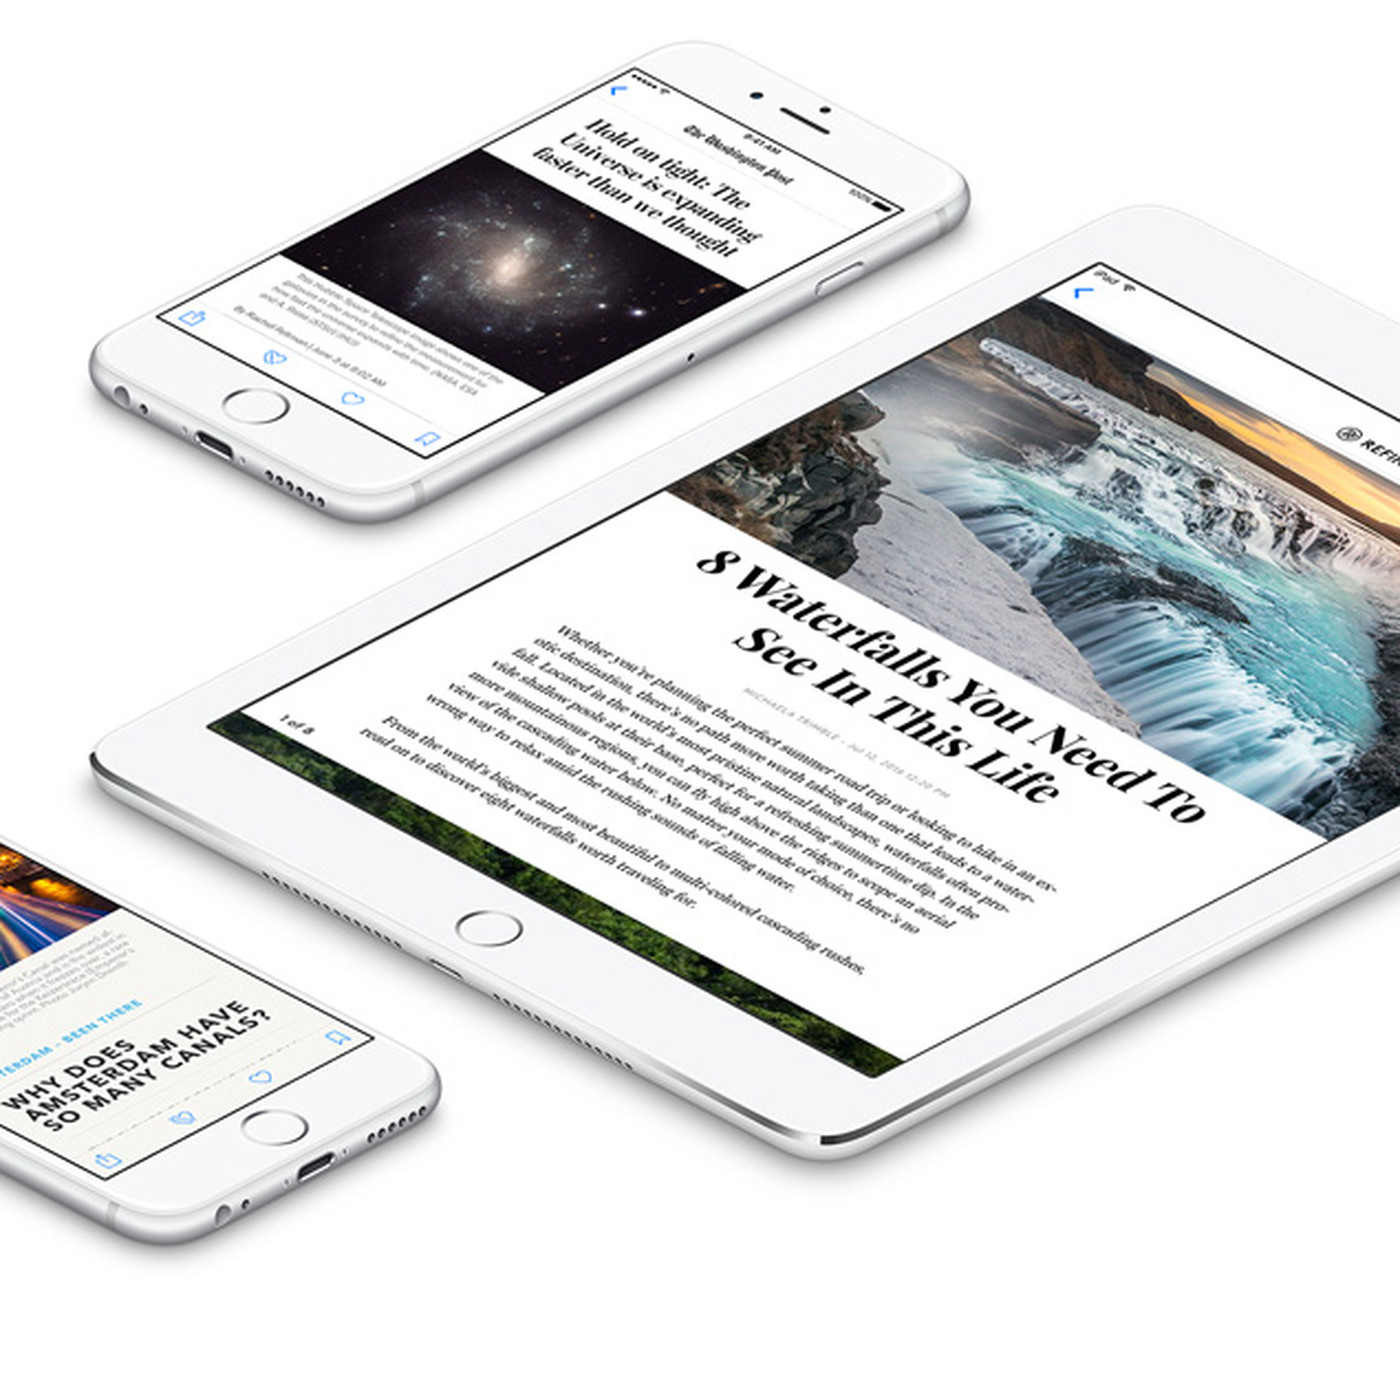 Apple is bringing in NBCUniversal to sell ads in Apple News